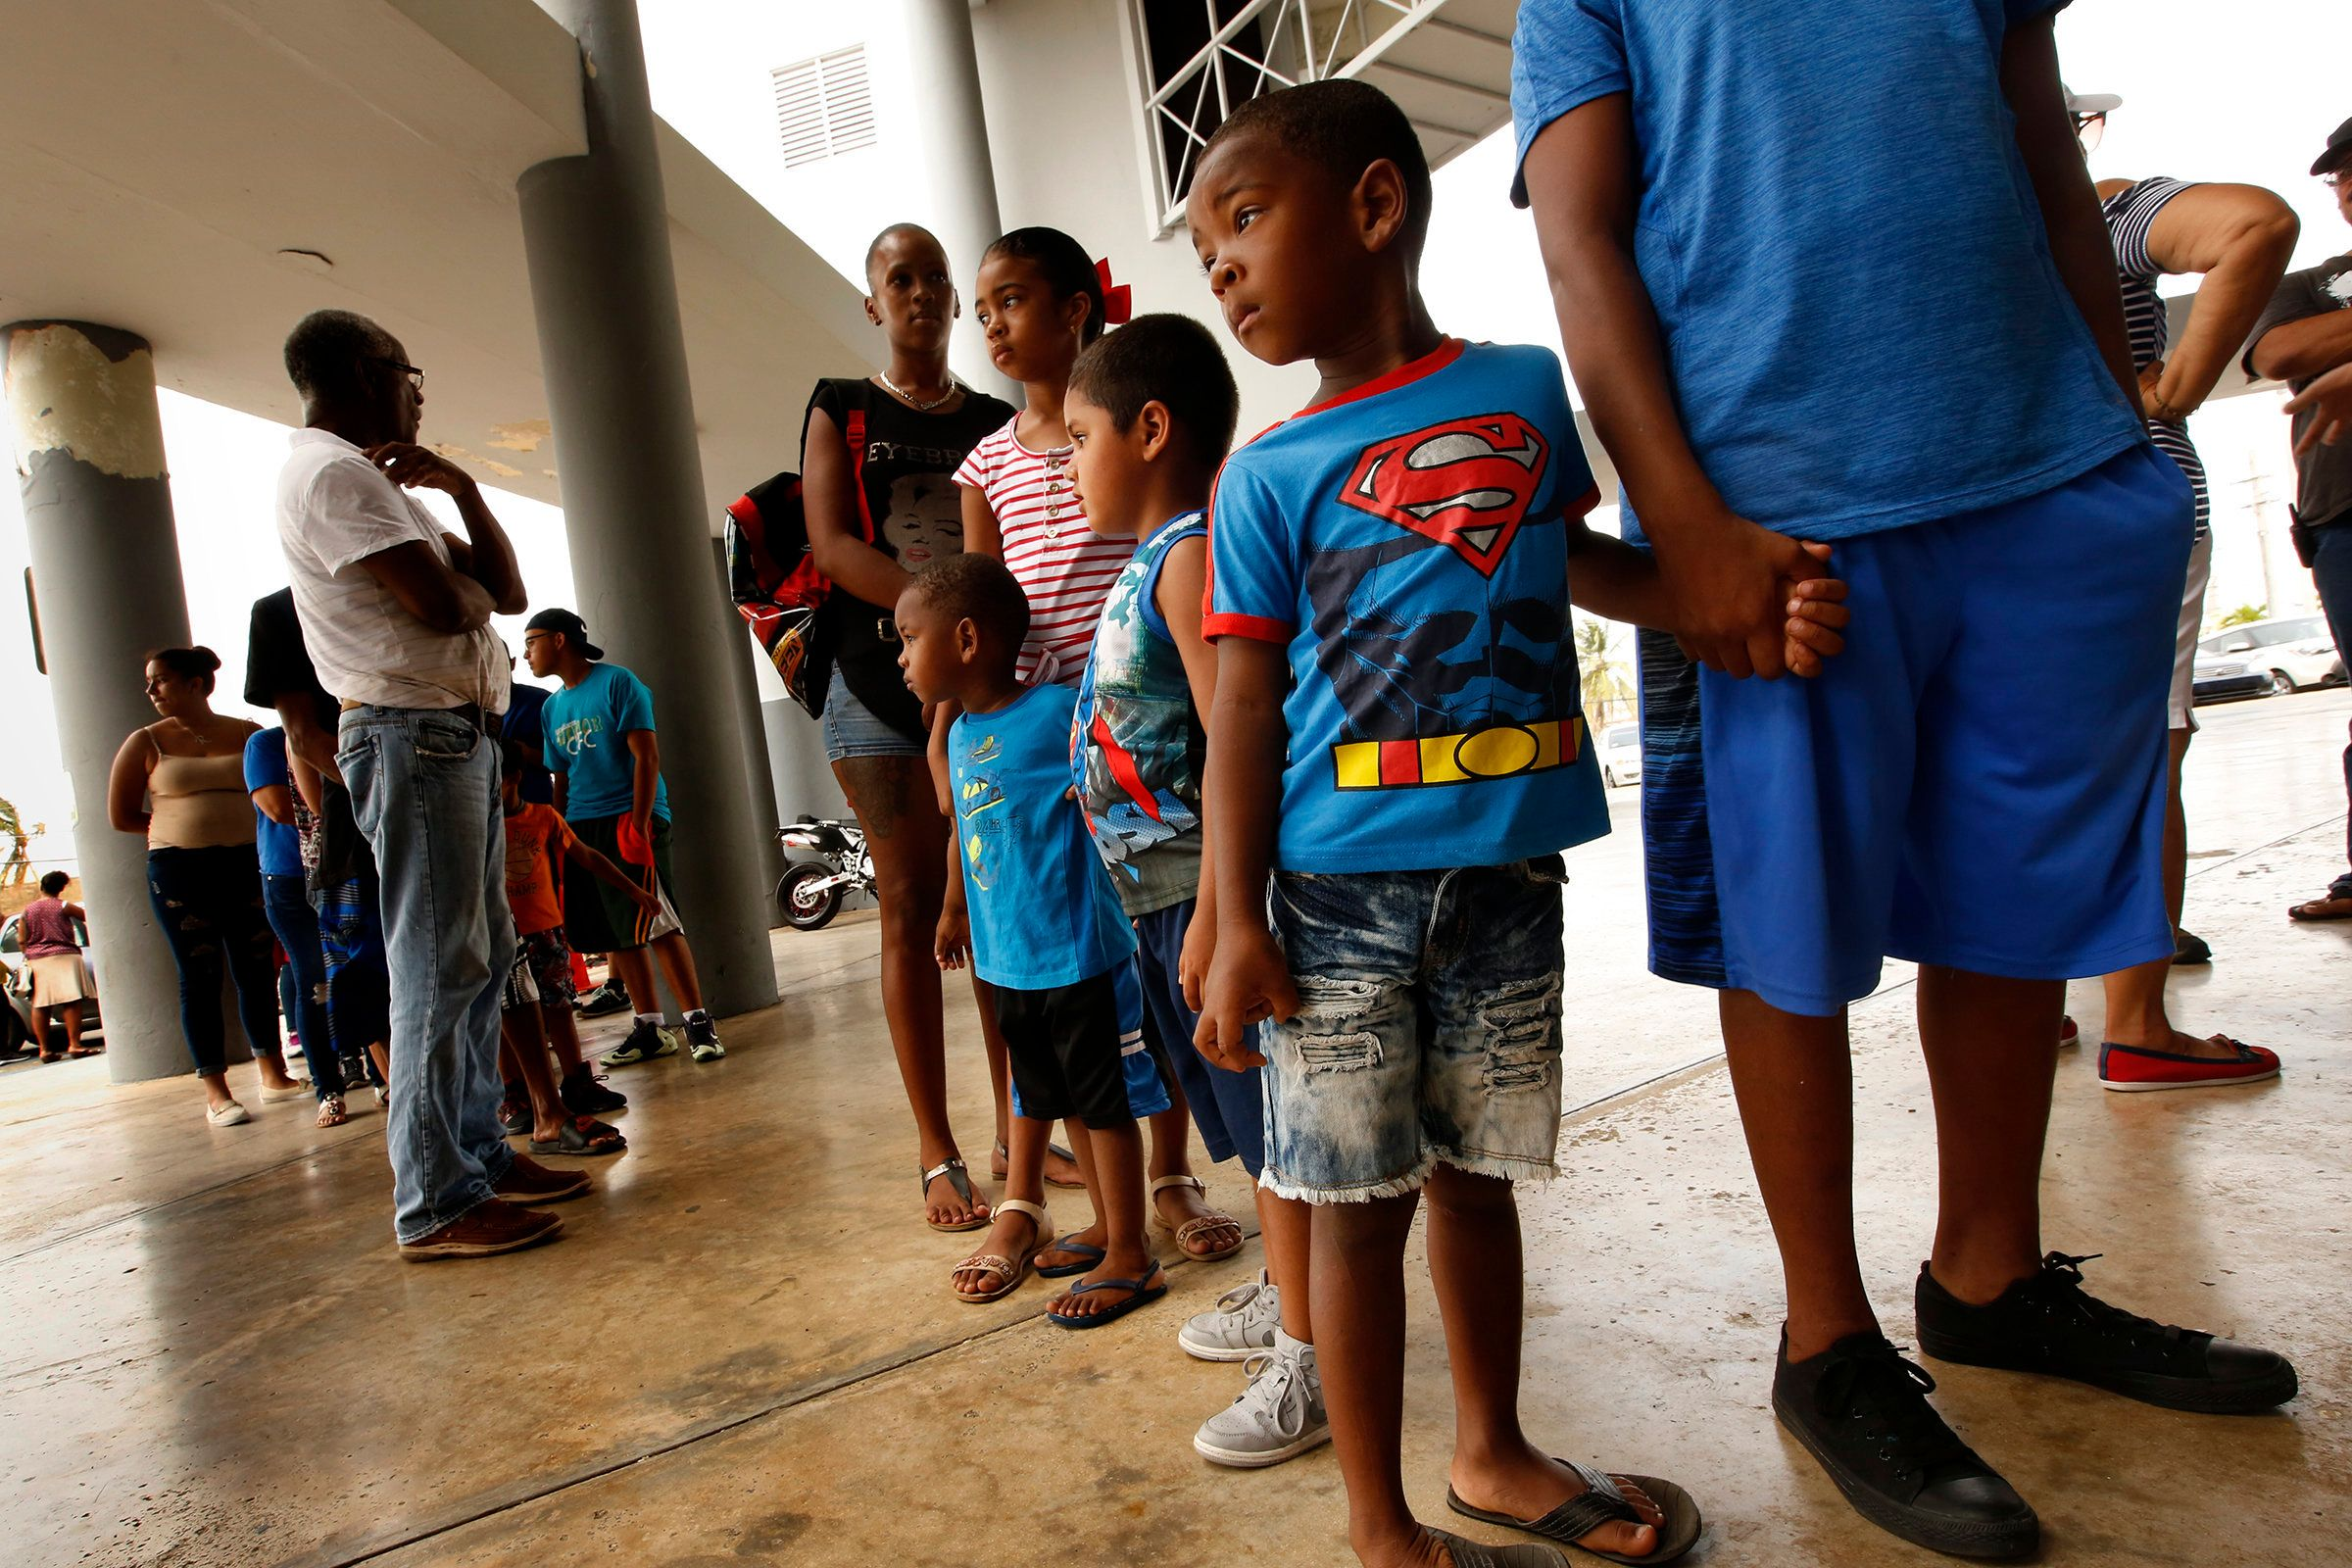 RIO GRANDE, PUERTO RICO - SEPTEMBER 27, 2017: Members of the Pisaro family of four children, wait in line for FEMA food distribution in the town of Rio Grande. The food only started today, one week after Hurricane Maria. In The northeast section of Puerto Rico, town of Rio Grande, people are only now starting to receive aid of any kind and many don't even know it's available. (Photo by Carolyn Cole/Los Angeles Times via Getty Images)